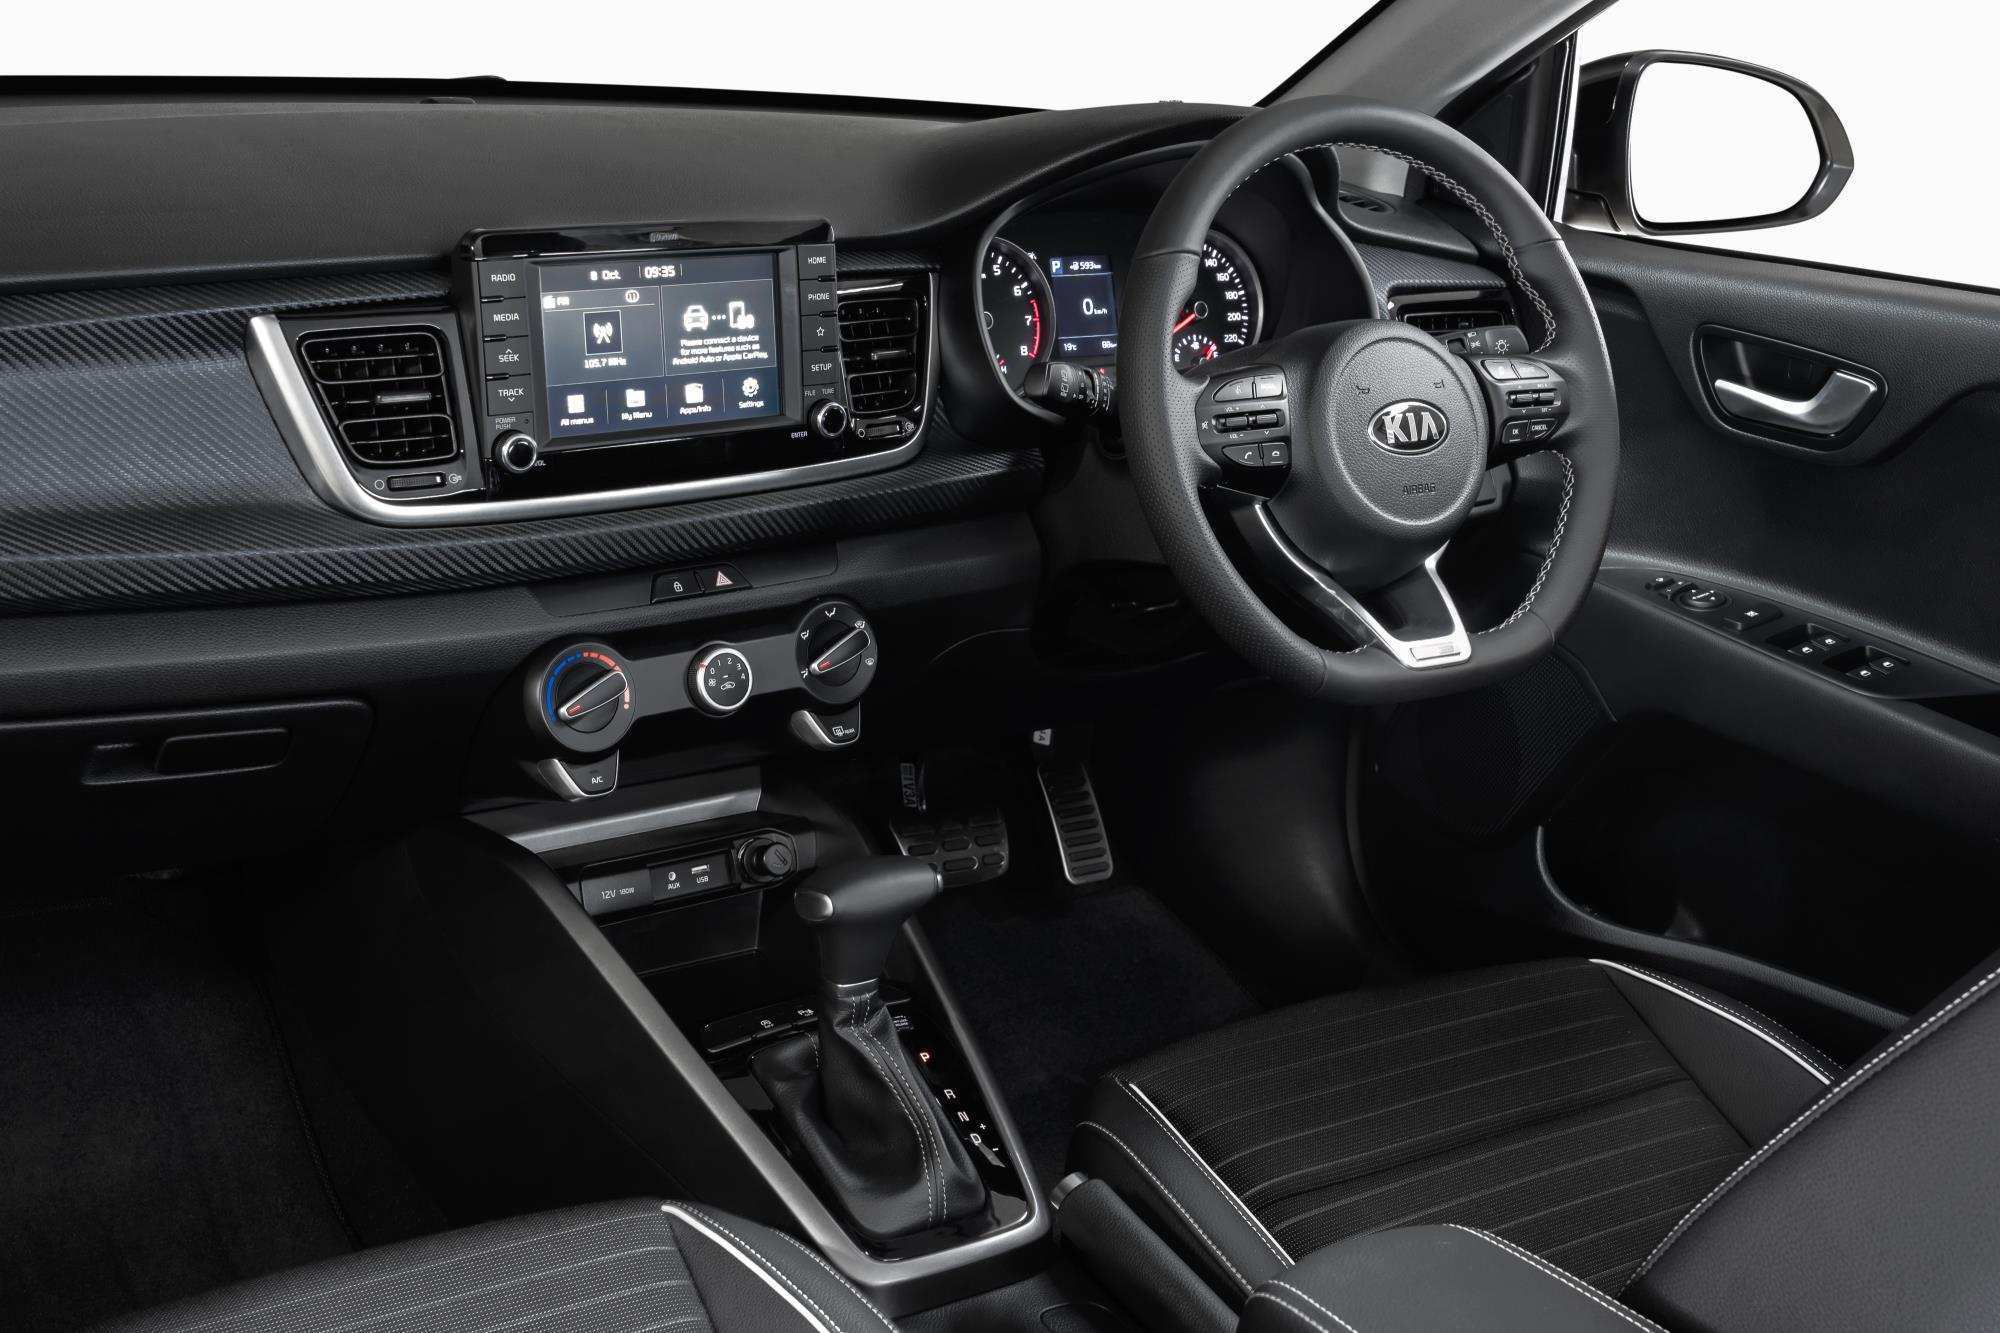 76 Gallery of Kia Rio 2019 Interior Release with Kia Rio 2019 Interior